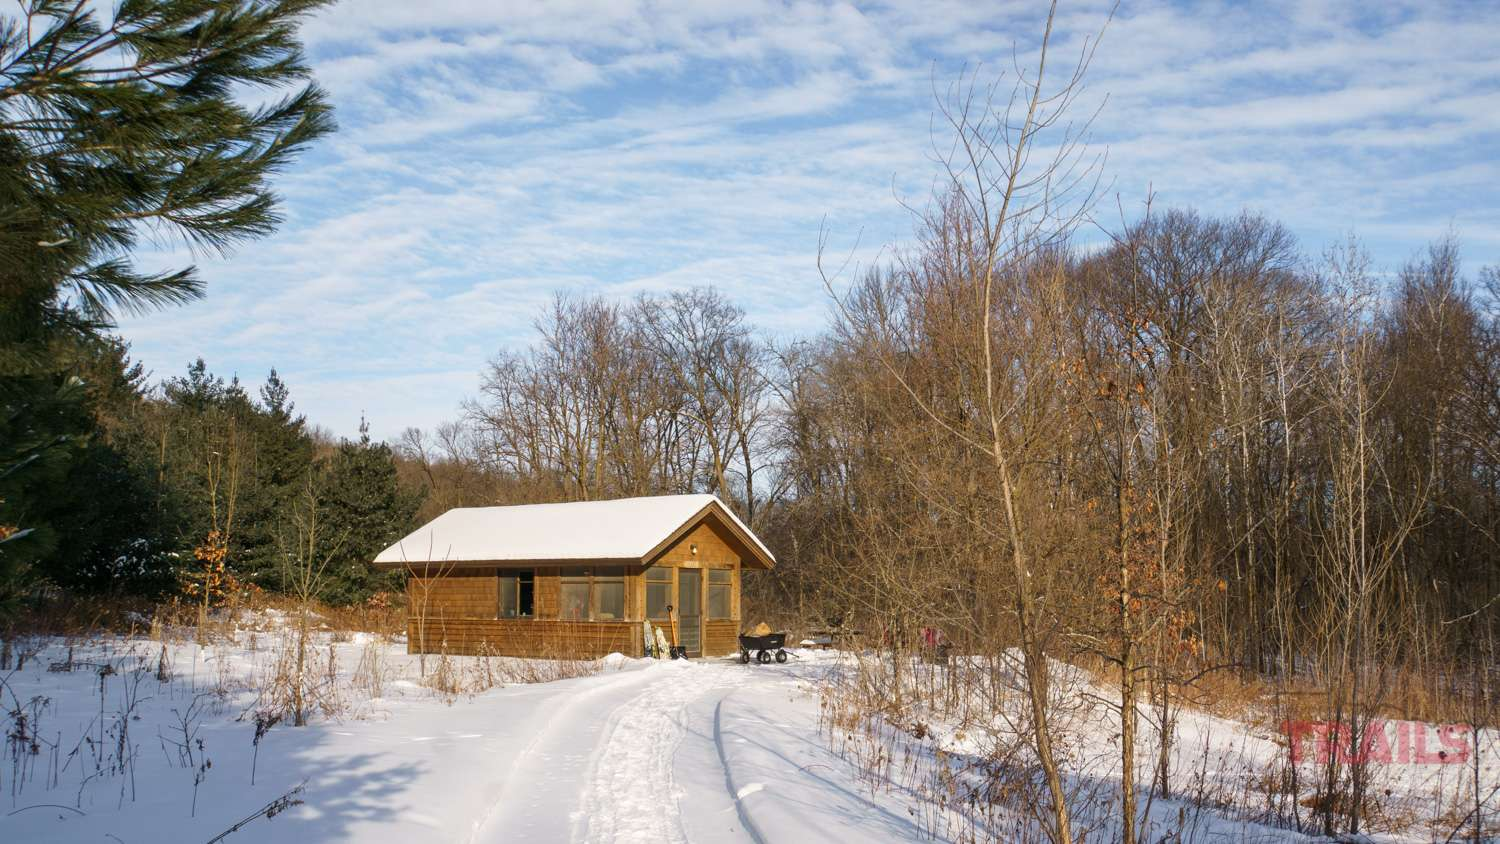 View of a camper cabin in the winter